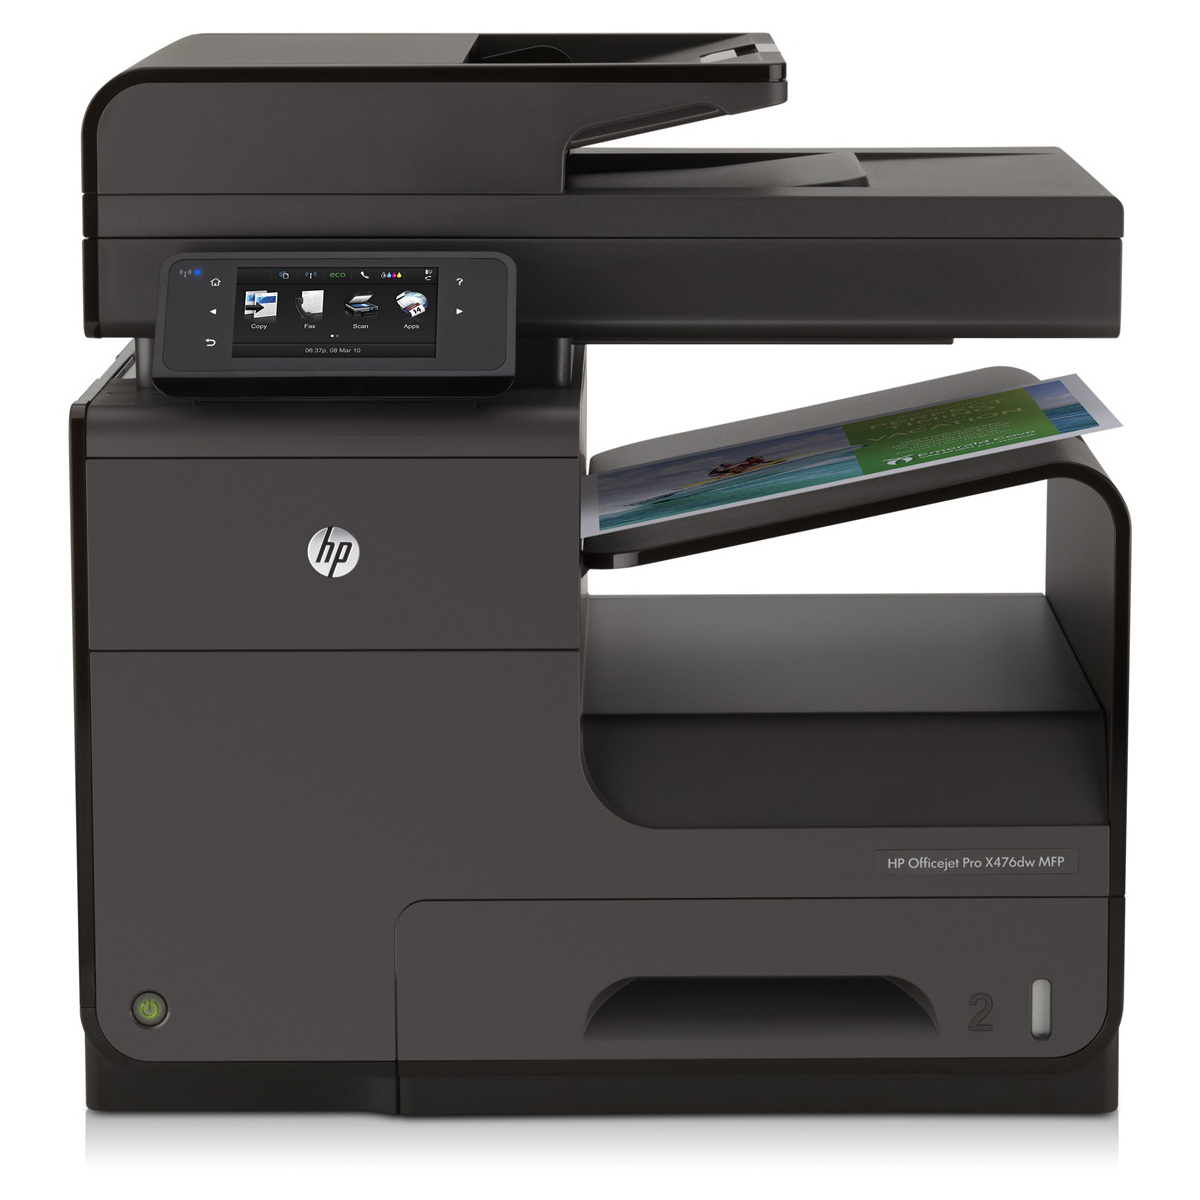 hp officejet pro x476dw imprimante multifonction hp sur. Black Bedroom Furniture Sets. Home Design Ideas